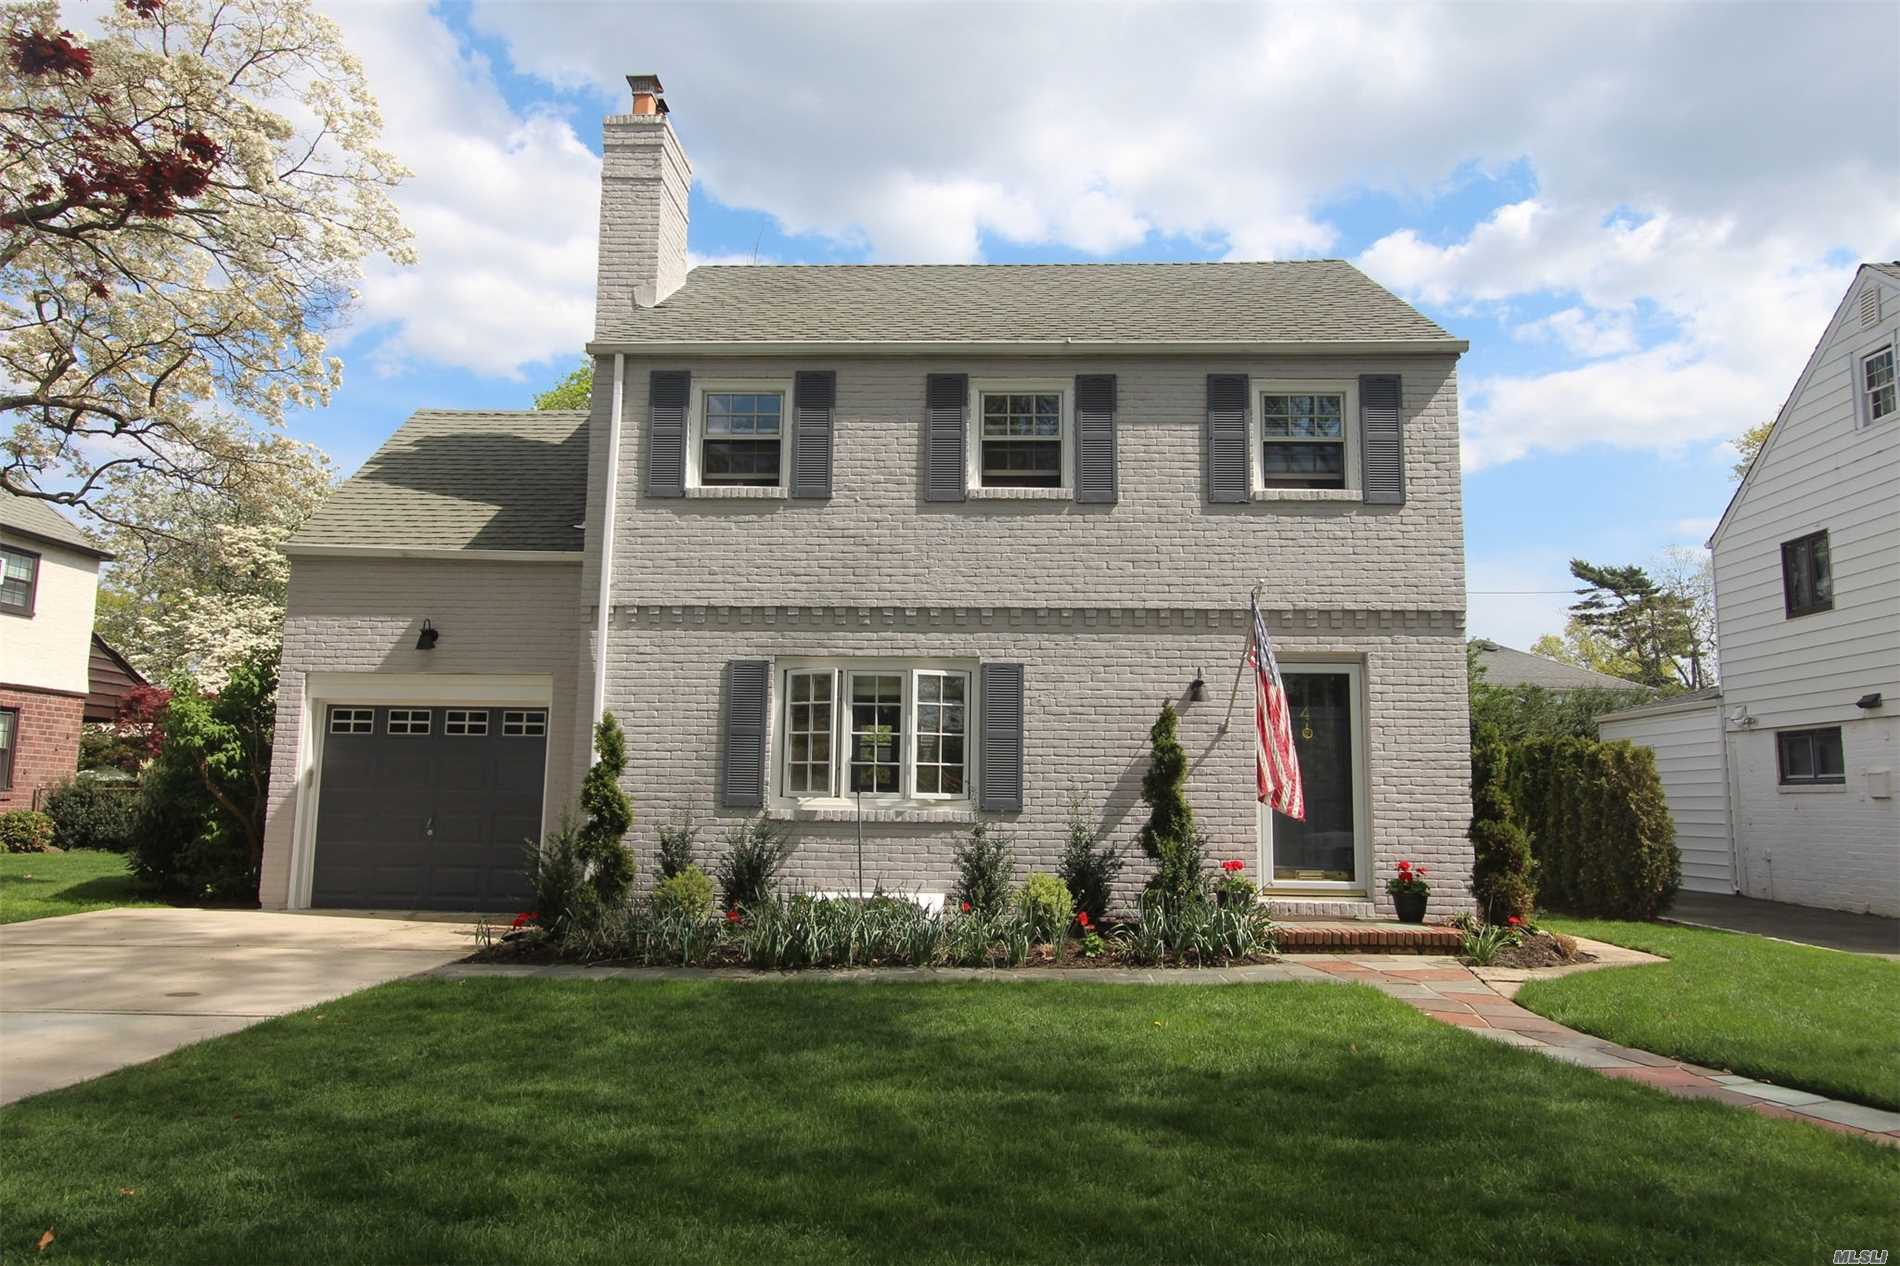 Welcome To The Village Of Garden City. Classic Mott Colonial On A Tree Lined Street. 1st Floor: Features Living Room With Wood Burning Fireplace, Formal Dining Room, Sun Room W/Heat, Eik W/ Subzero Frig, Quartz Counter-Tops, Pro-Grade Appliances & 1/2Bath. 2nd Floor: Includes Master Bedrm With Wic, 2 Additional Bedrooms & Full Bath. Basement Finished W/ Utilities, Washer/Dryer. Pella Windows, French Door & Sliders. Igs & Security System. All Info Should Be Indep Verified Include New Tax Grivance